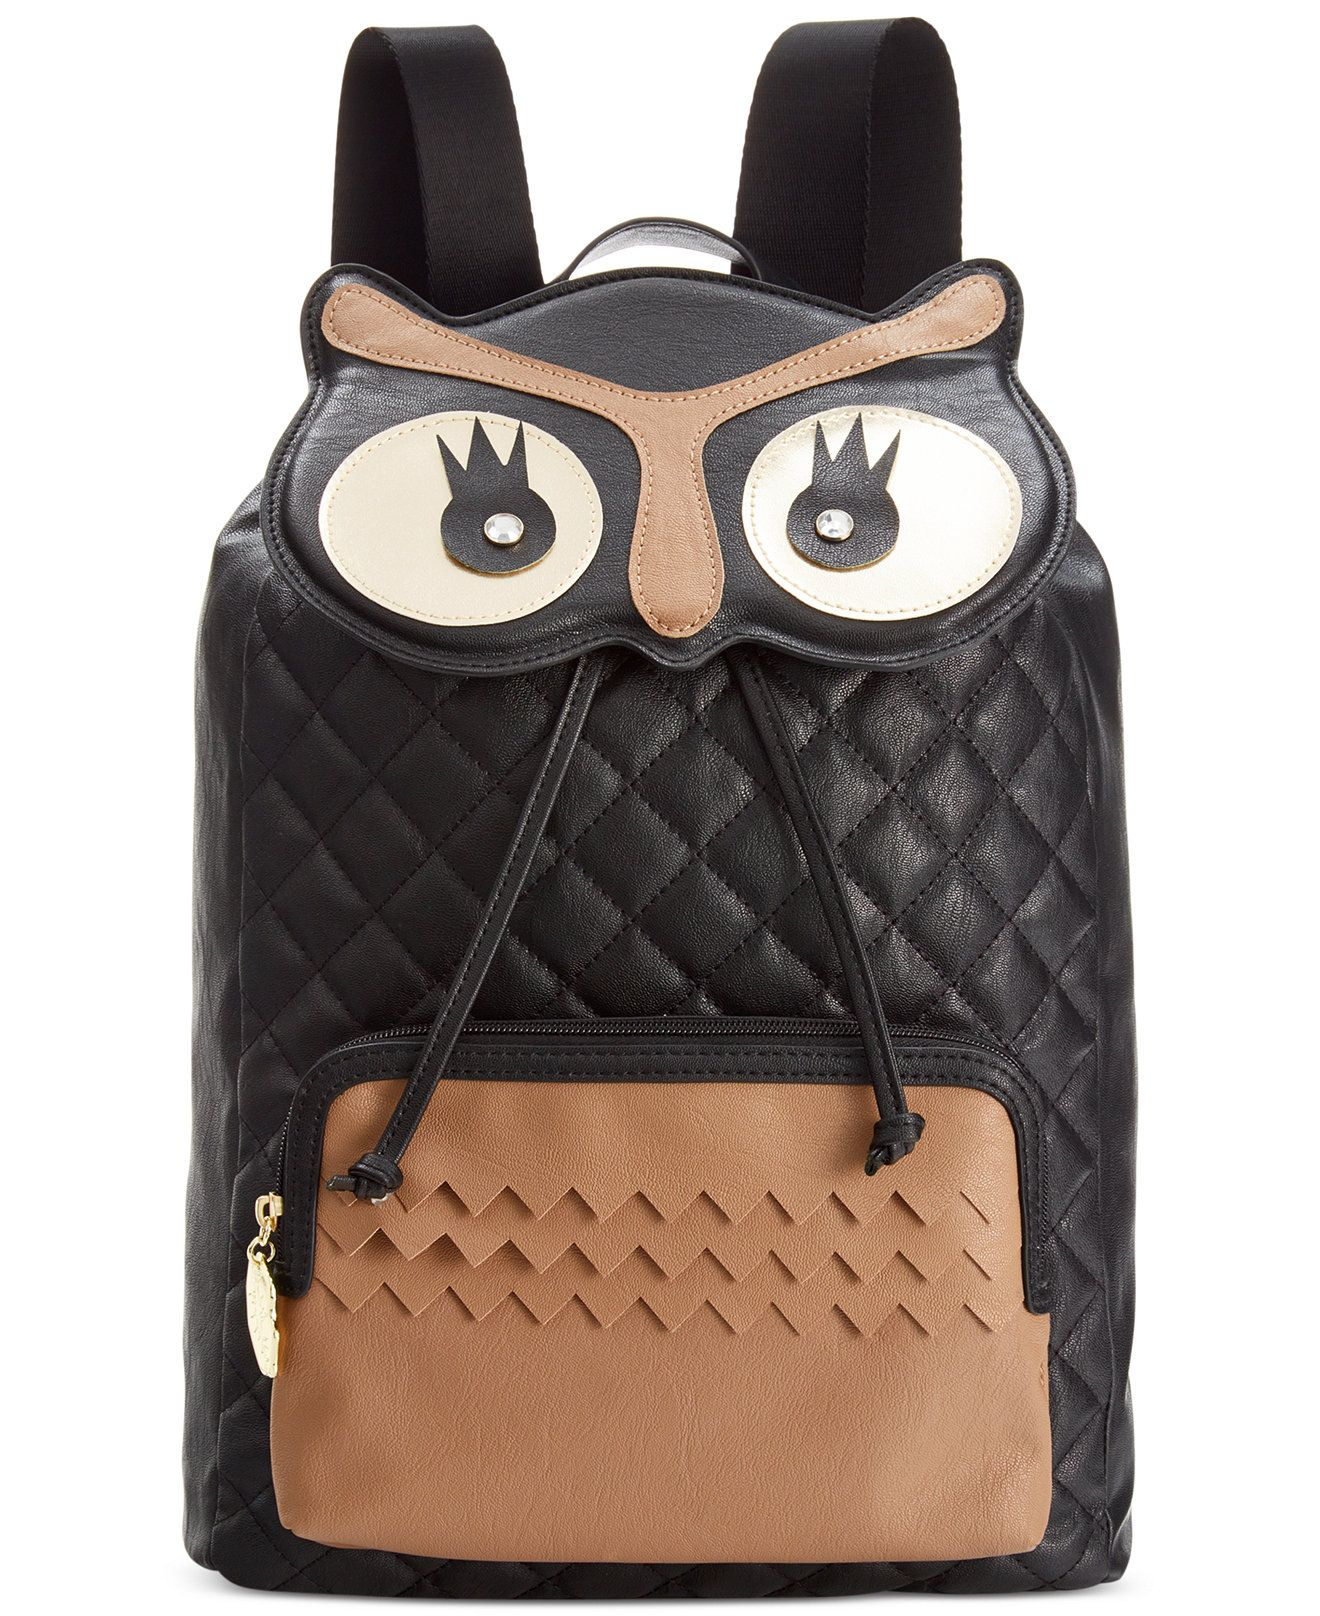 On sale for  80 right now... Betsey Johnson Owl Backpack - Handbags ... ae81485ac9687